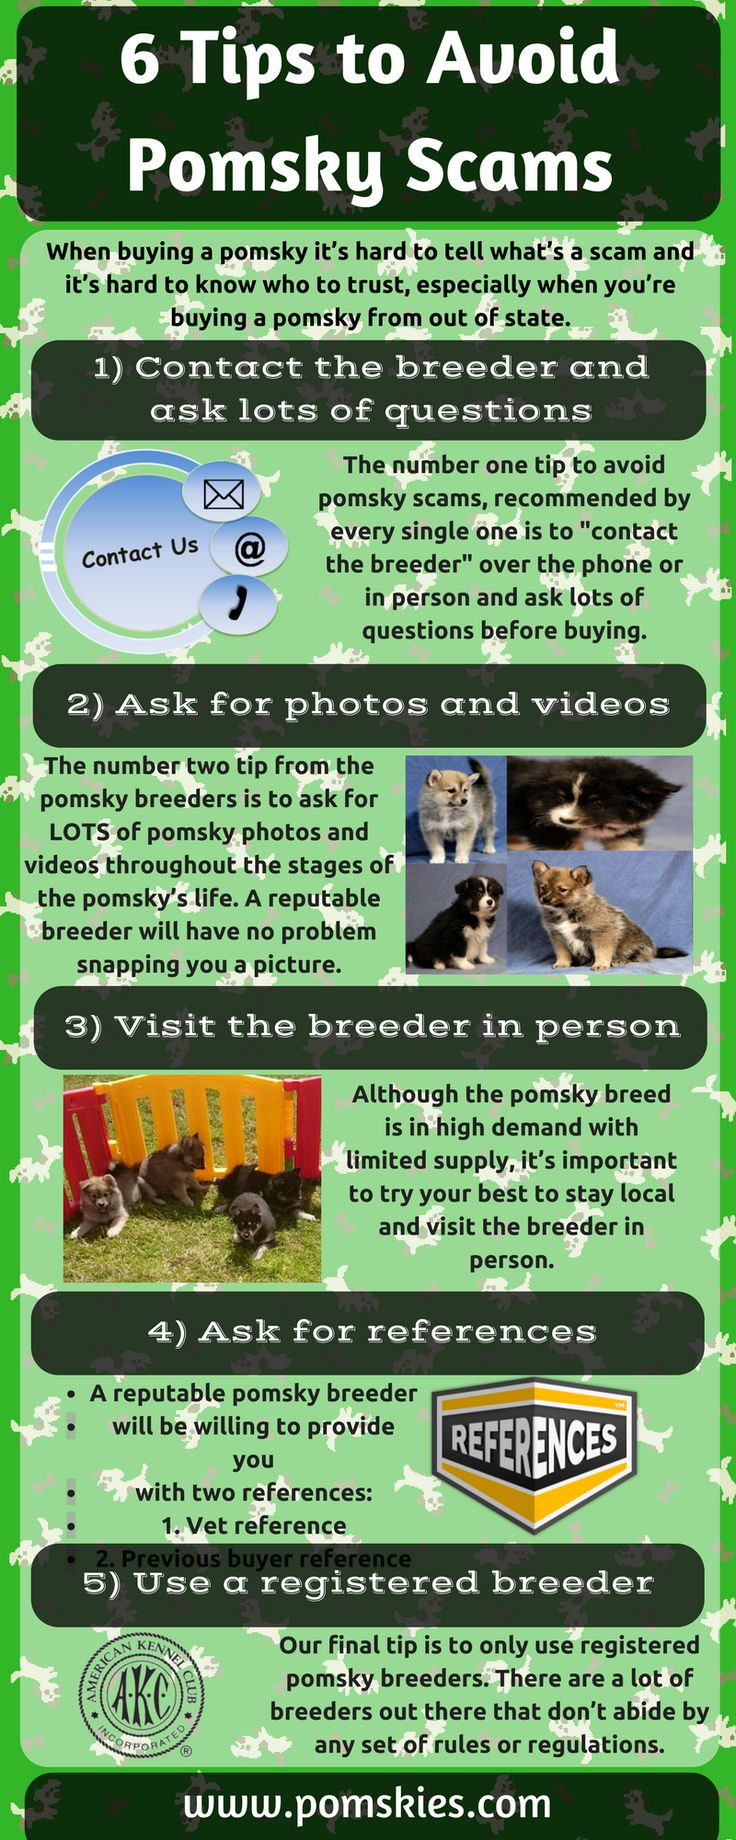 Nowadays, scammers are everywhere. So, you always think to avoid and protect yourself from scammers. There are many scammers who generate fake #Pomsky breeder information and take your money. In this Infographic, I have listed five tips to avoid Pomsky scams. http://www.pomskies.com/are-pomskies-real/